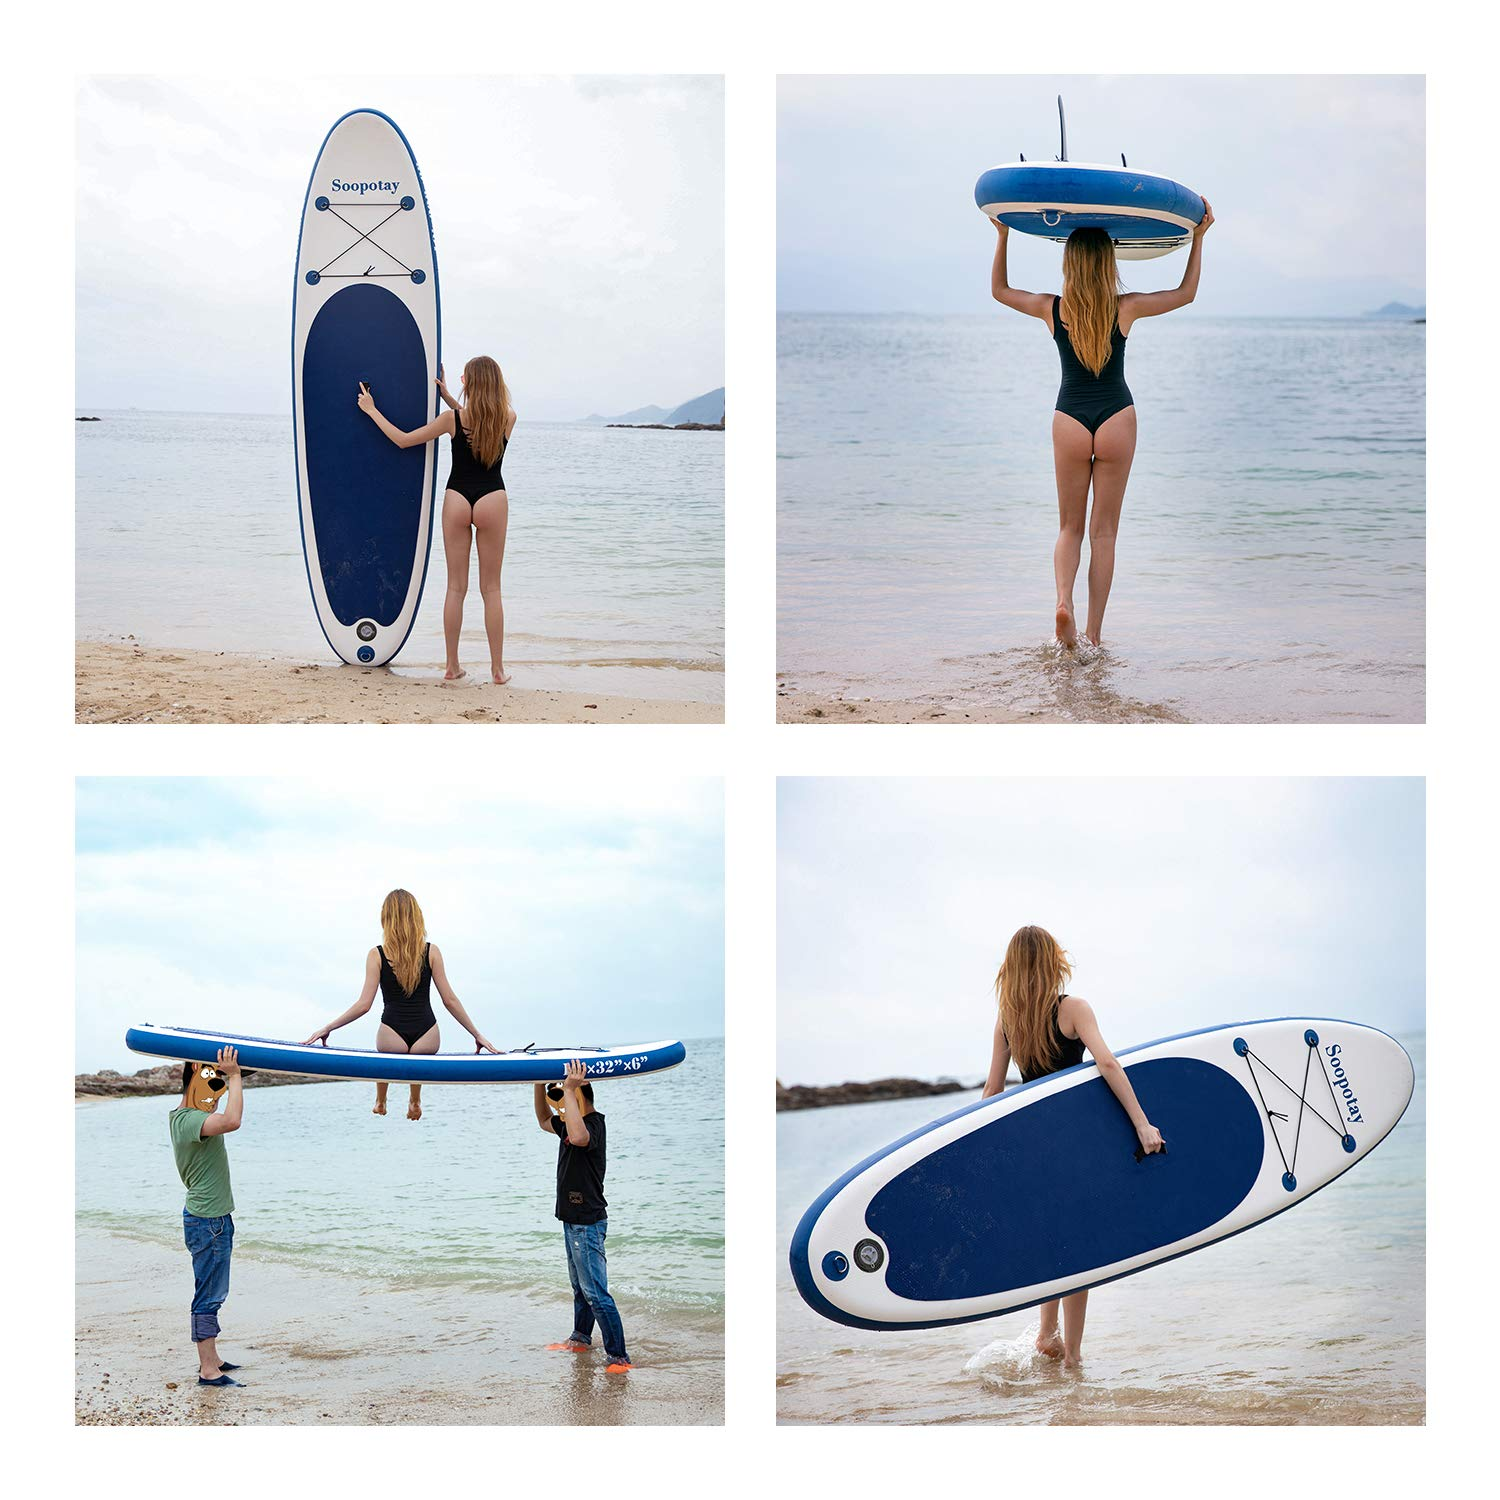 Inflatable SUP Stand Up Paddle Board, Inflatable SUP Board, iSUP Package with All Accessories (All Round Primary-Navy Blue-10' x 32'' x 6'') by Soopotay (Image #2)